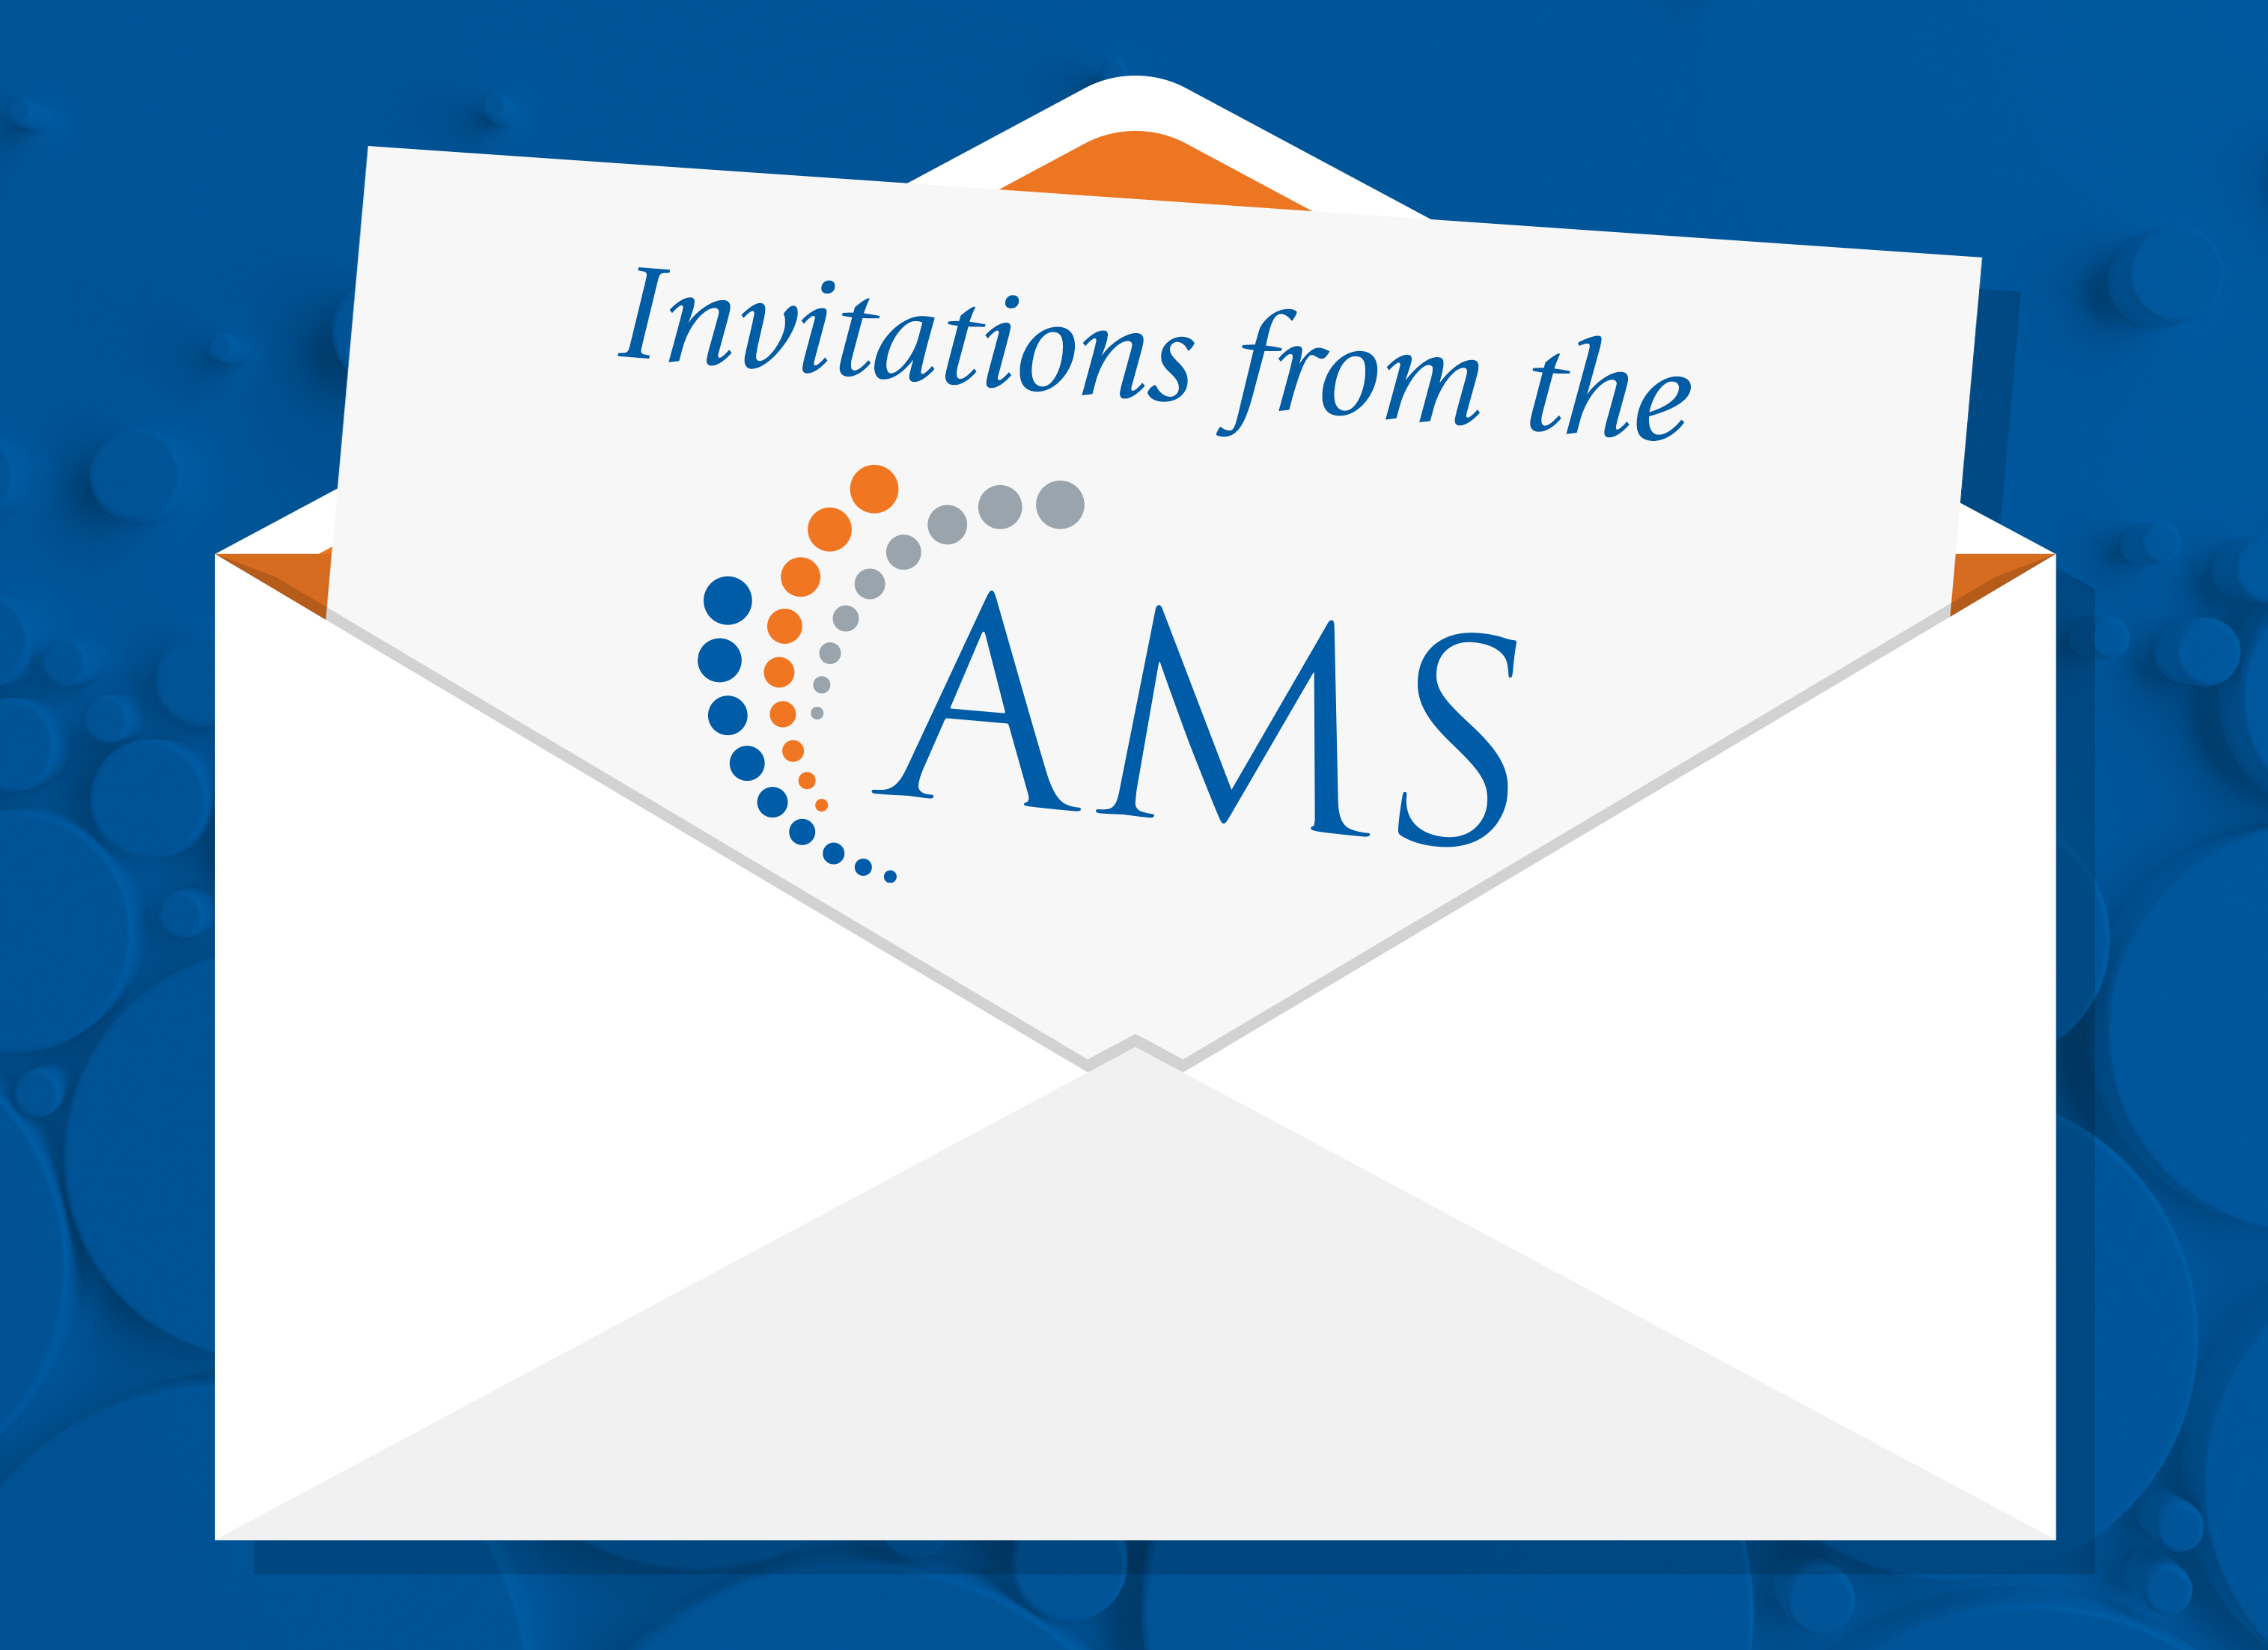 Invitations from the AMS